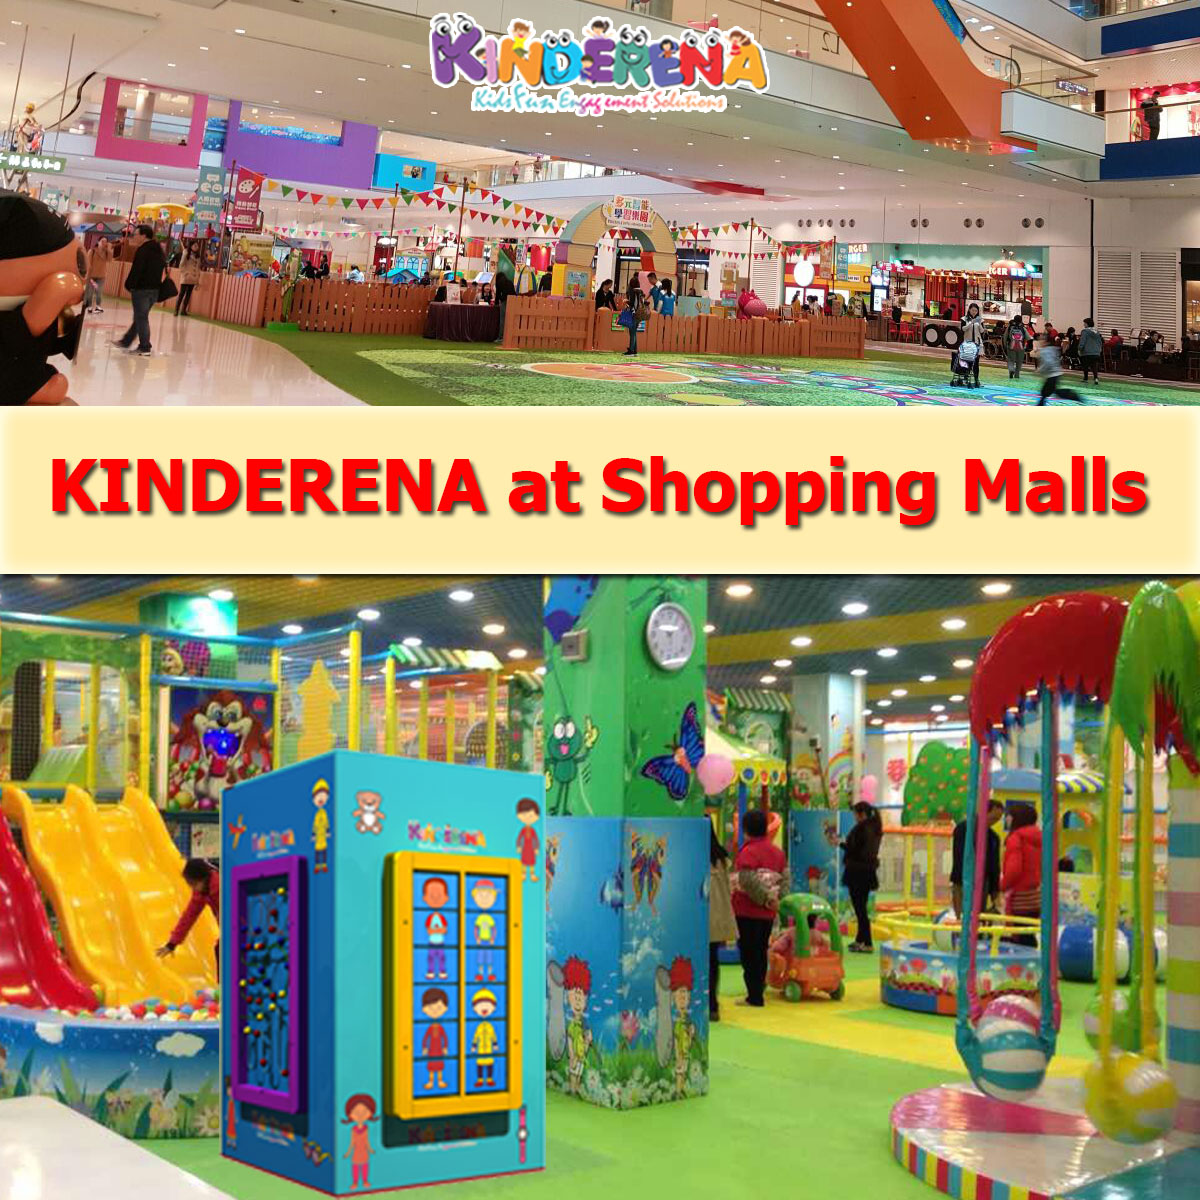 KINDERENA at Shopping Malls